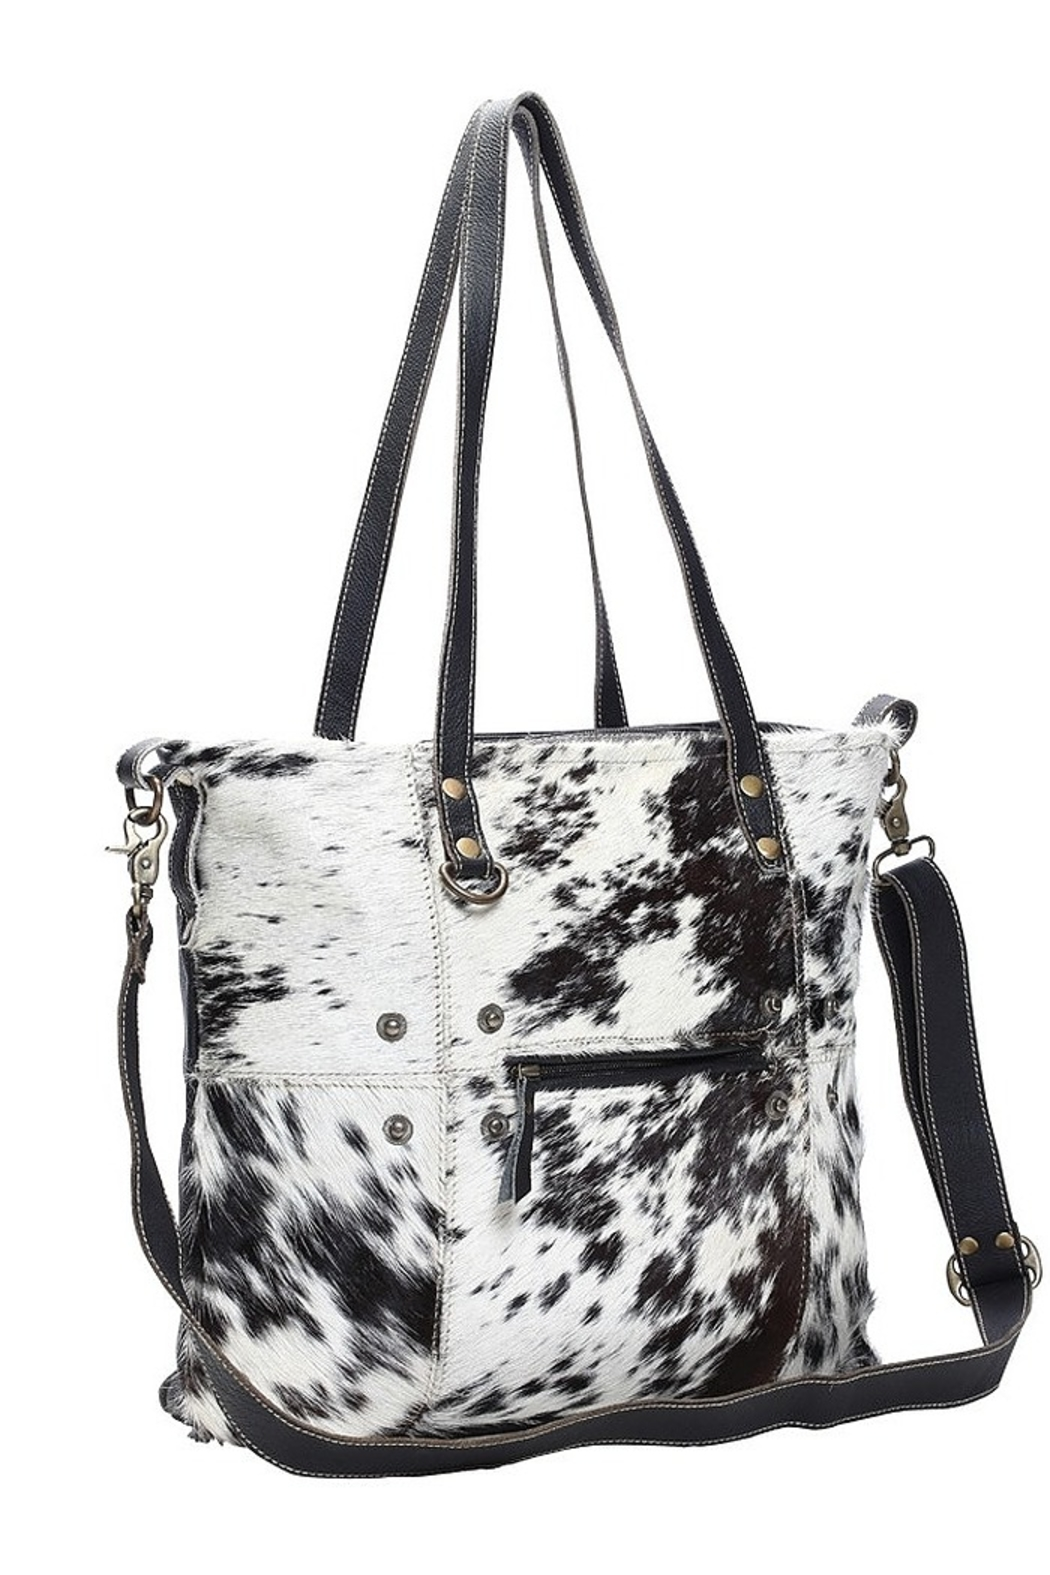 Myra Bags Black & White Cowhide Shade Tote Bag - Front Full Image